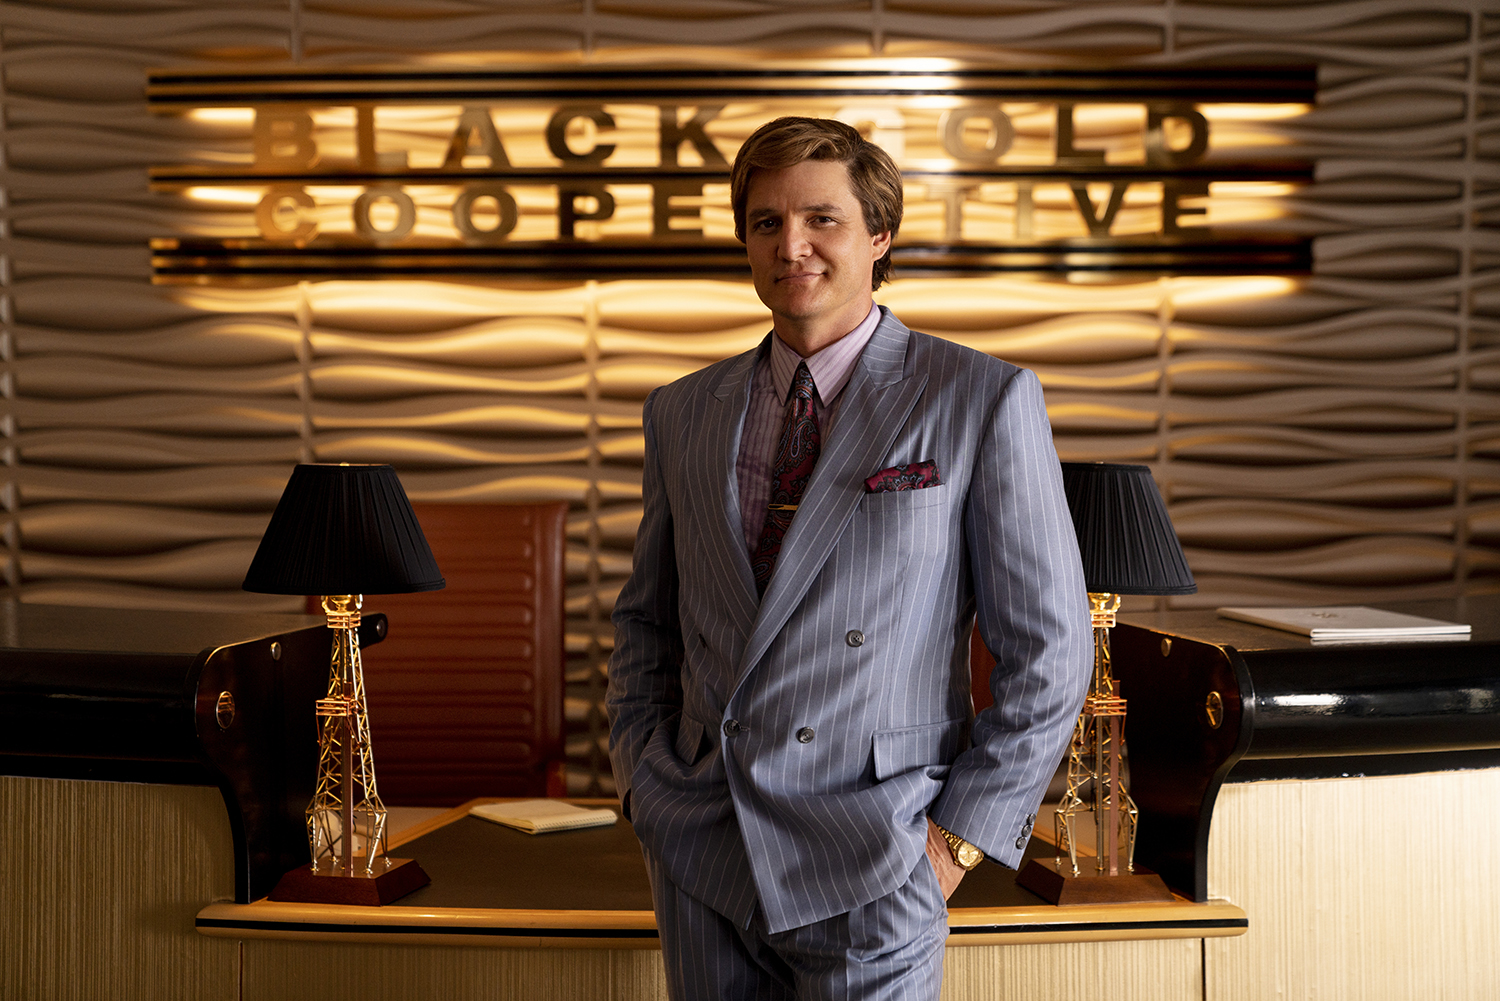 PEDRO PASCAL as Maxwell Lord (Image: Warner Bros. Pictures)